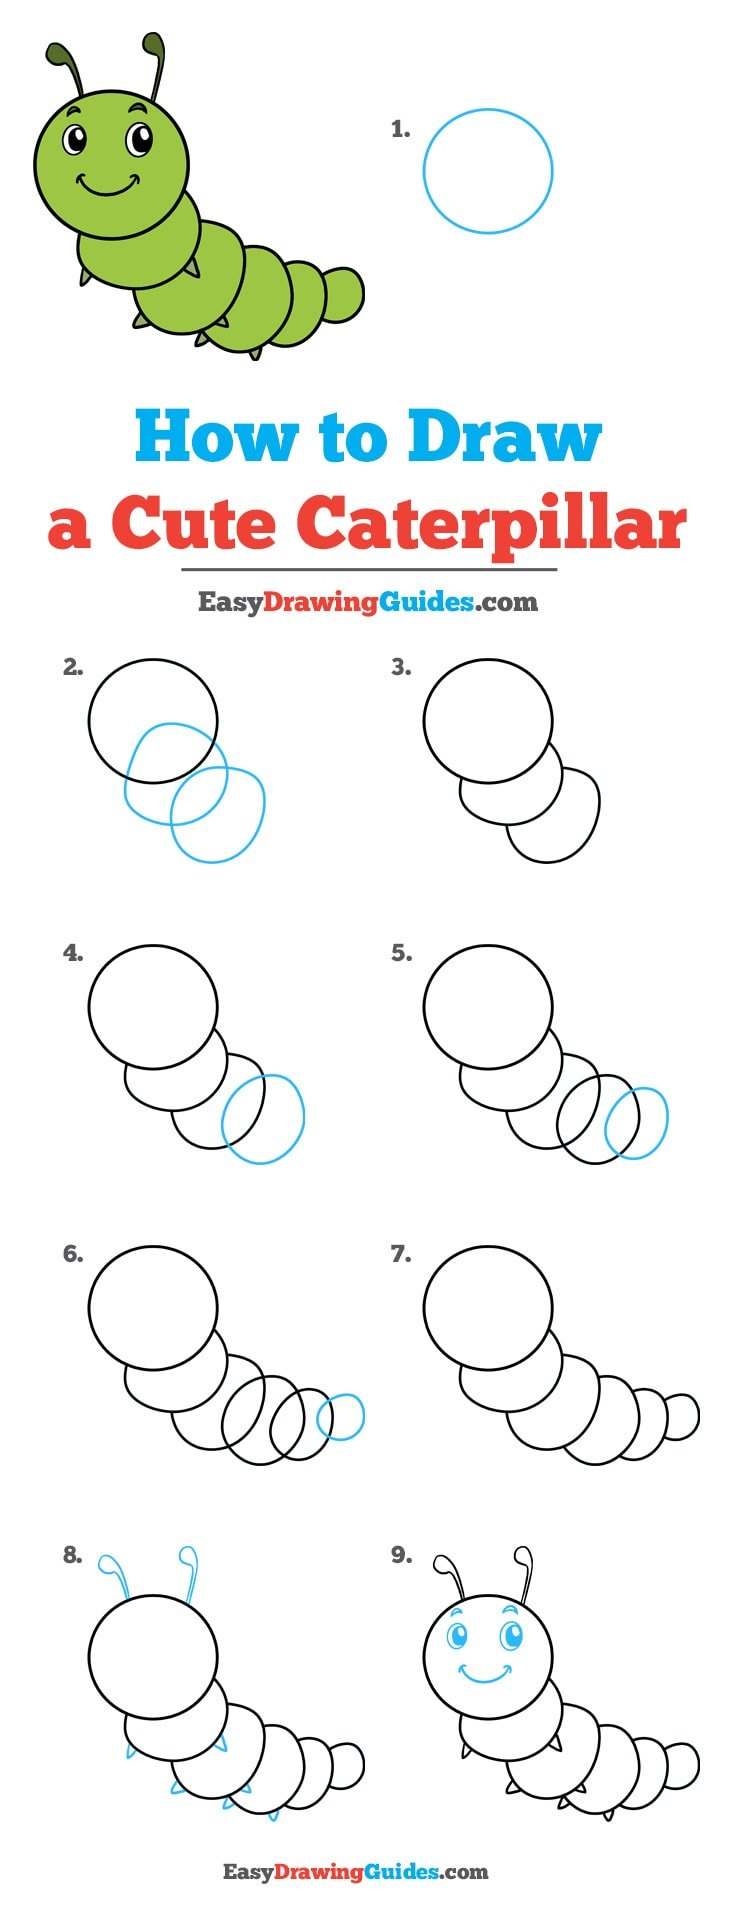 How to Draw Cute Caterpillar